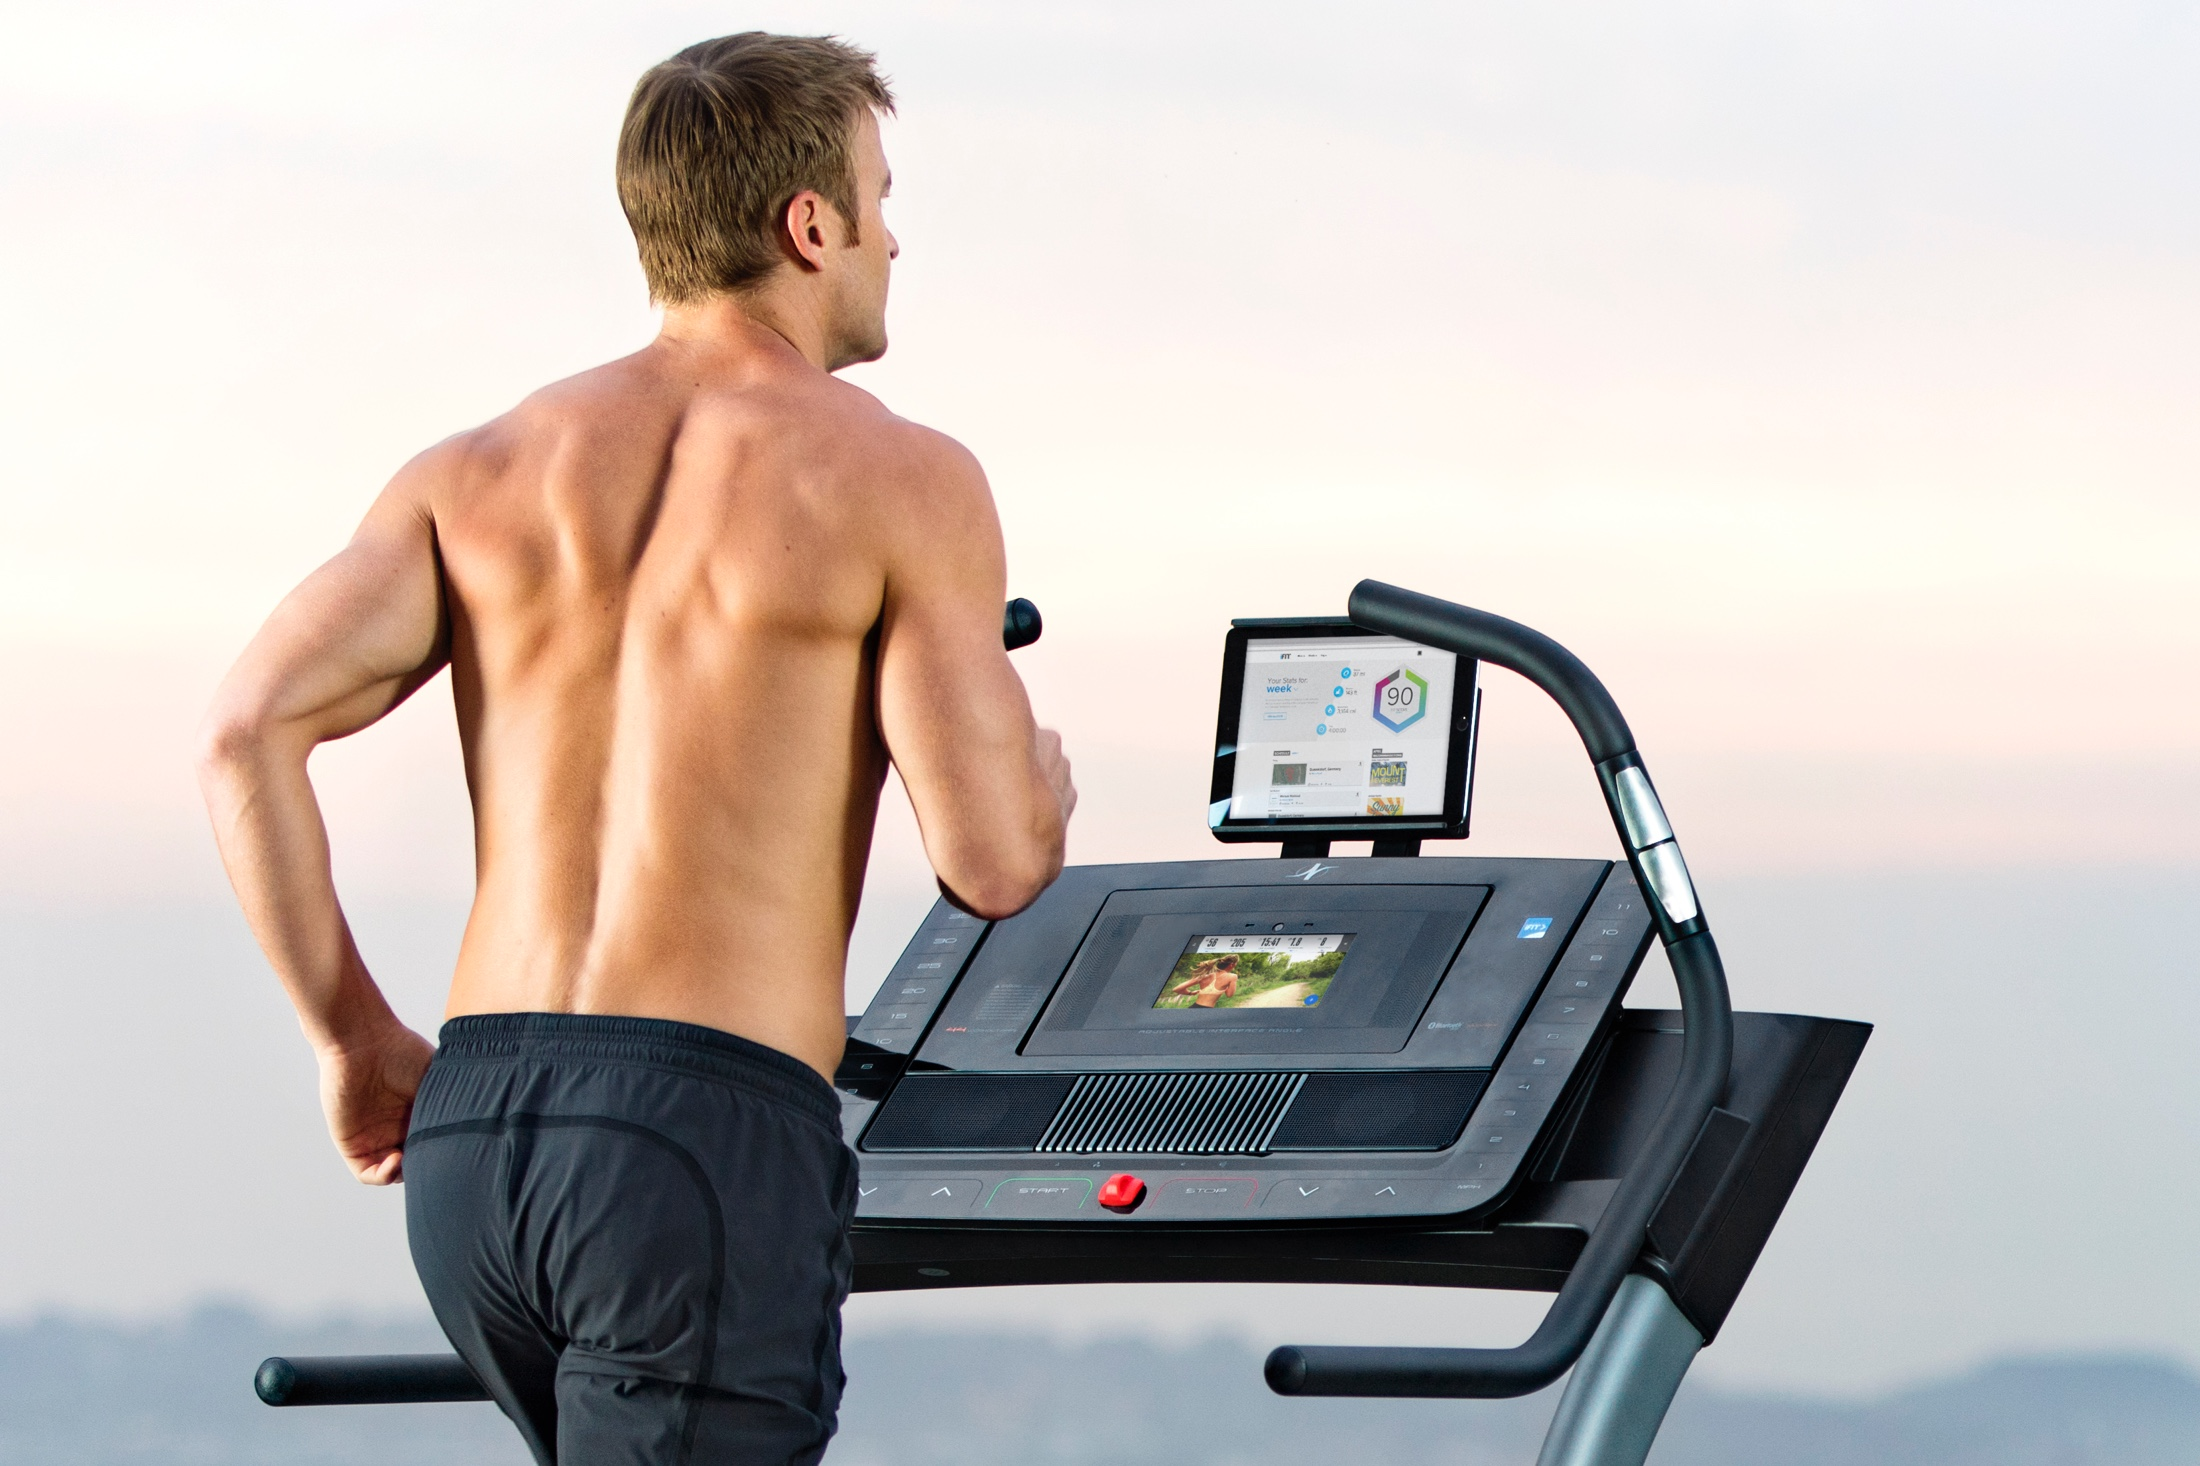 NordicTrack X9i Incline Trainer gallery image 3